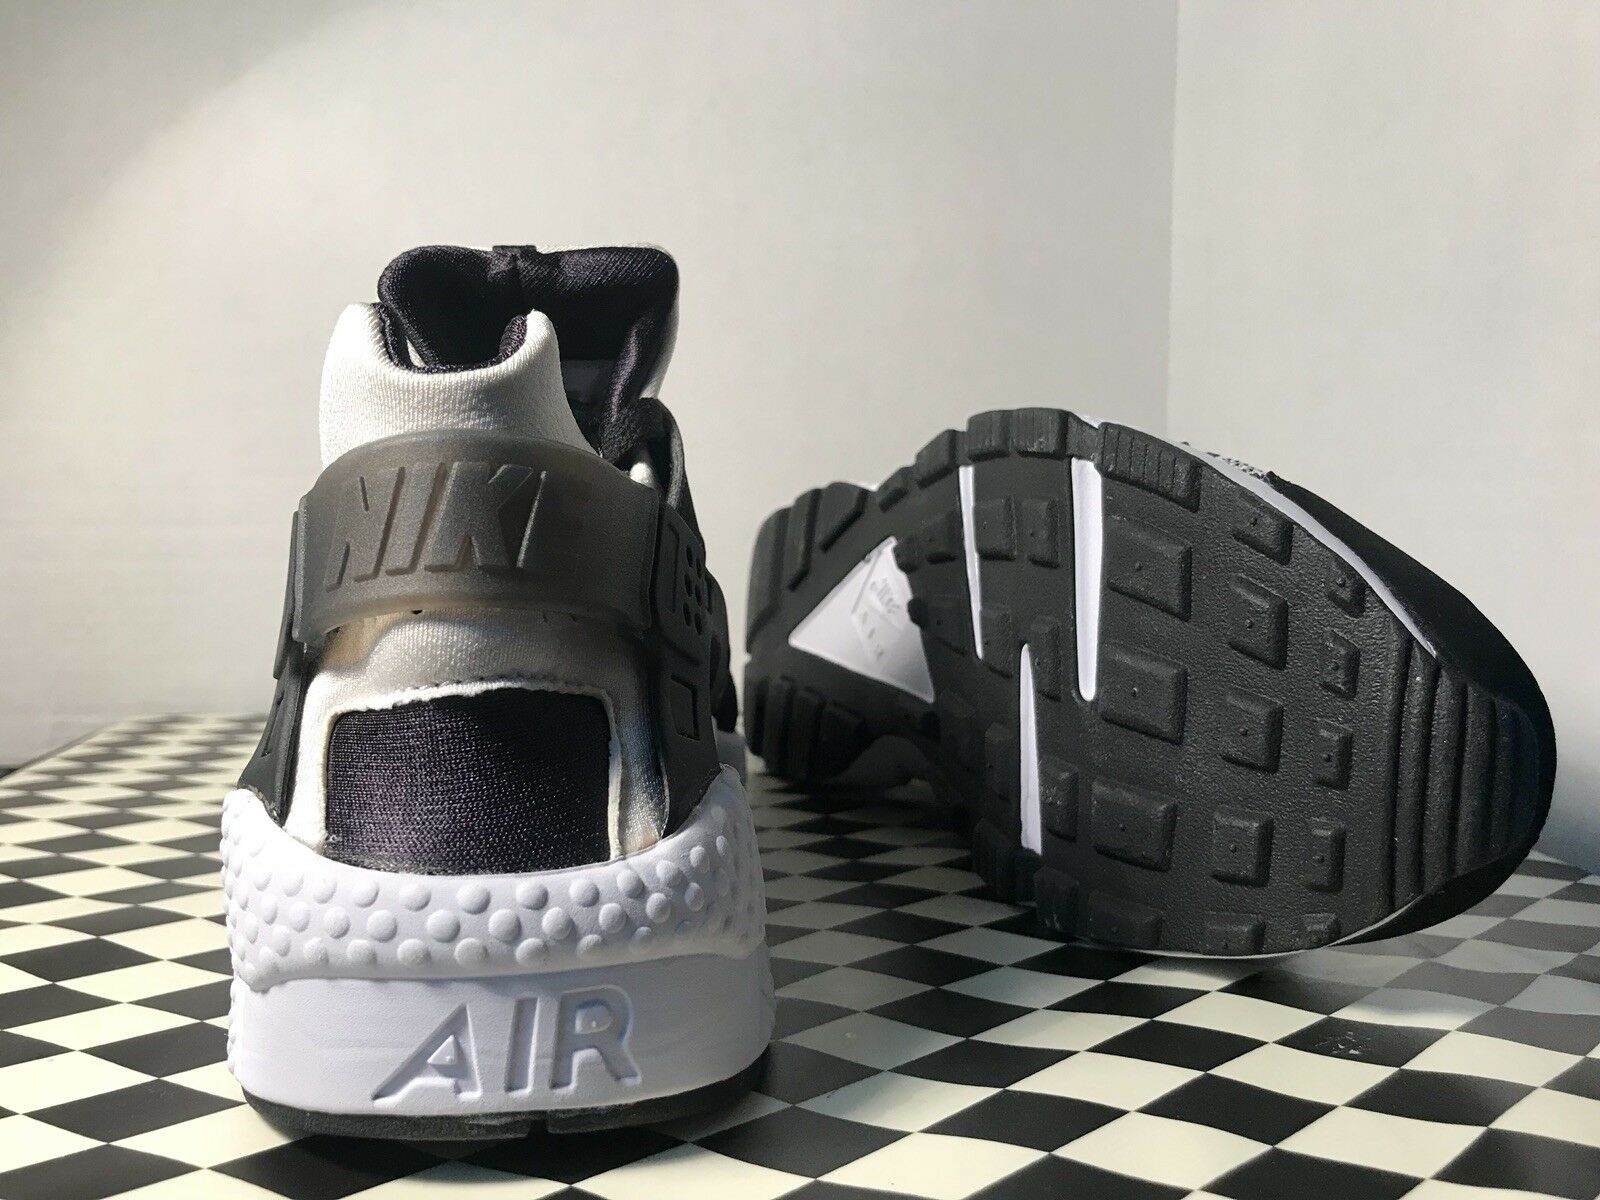 Nike Huarache Run 8.5 Pa 8.5 Run Black White Digital Camo  presto Off White 705008 011 7f908a